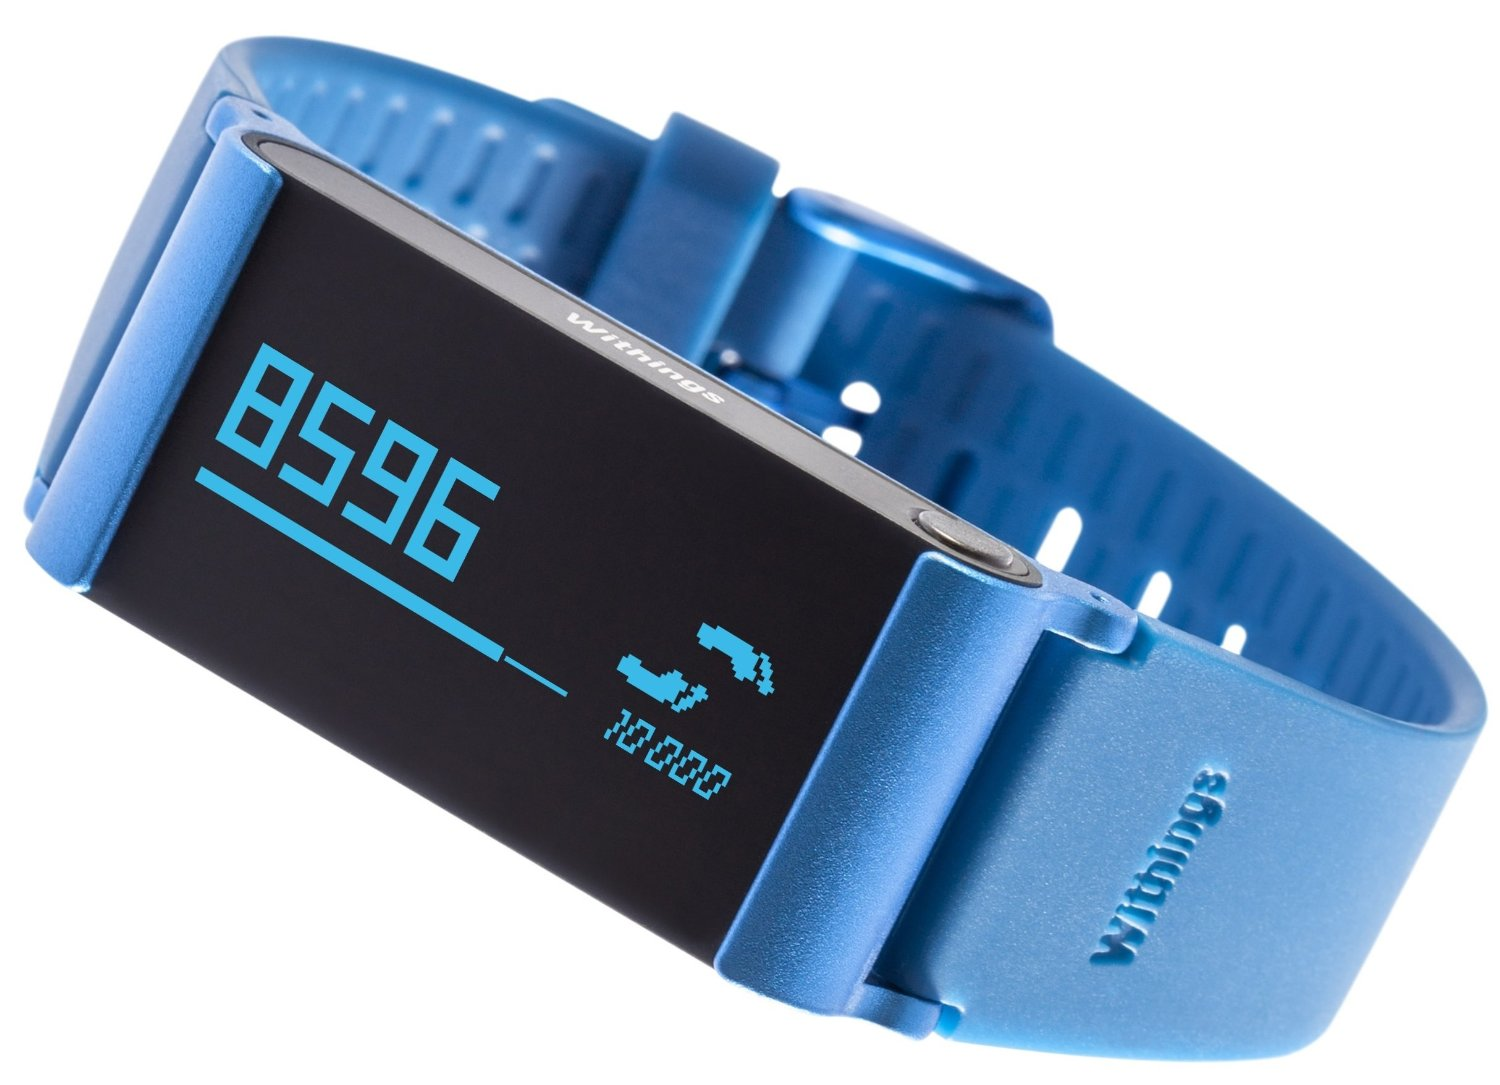 Writhings Activity, Sleep and Heart Rate Tracker